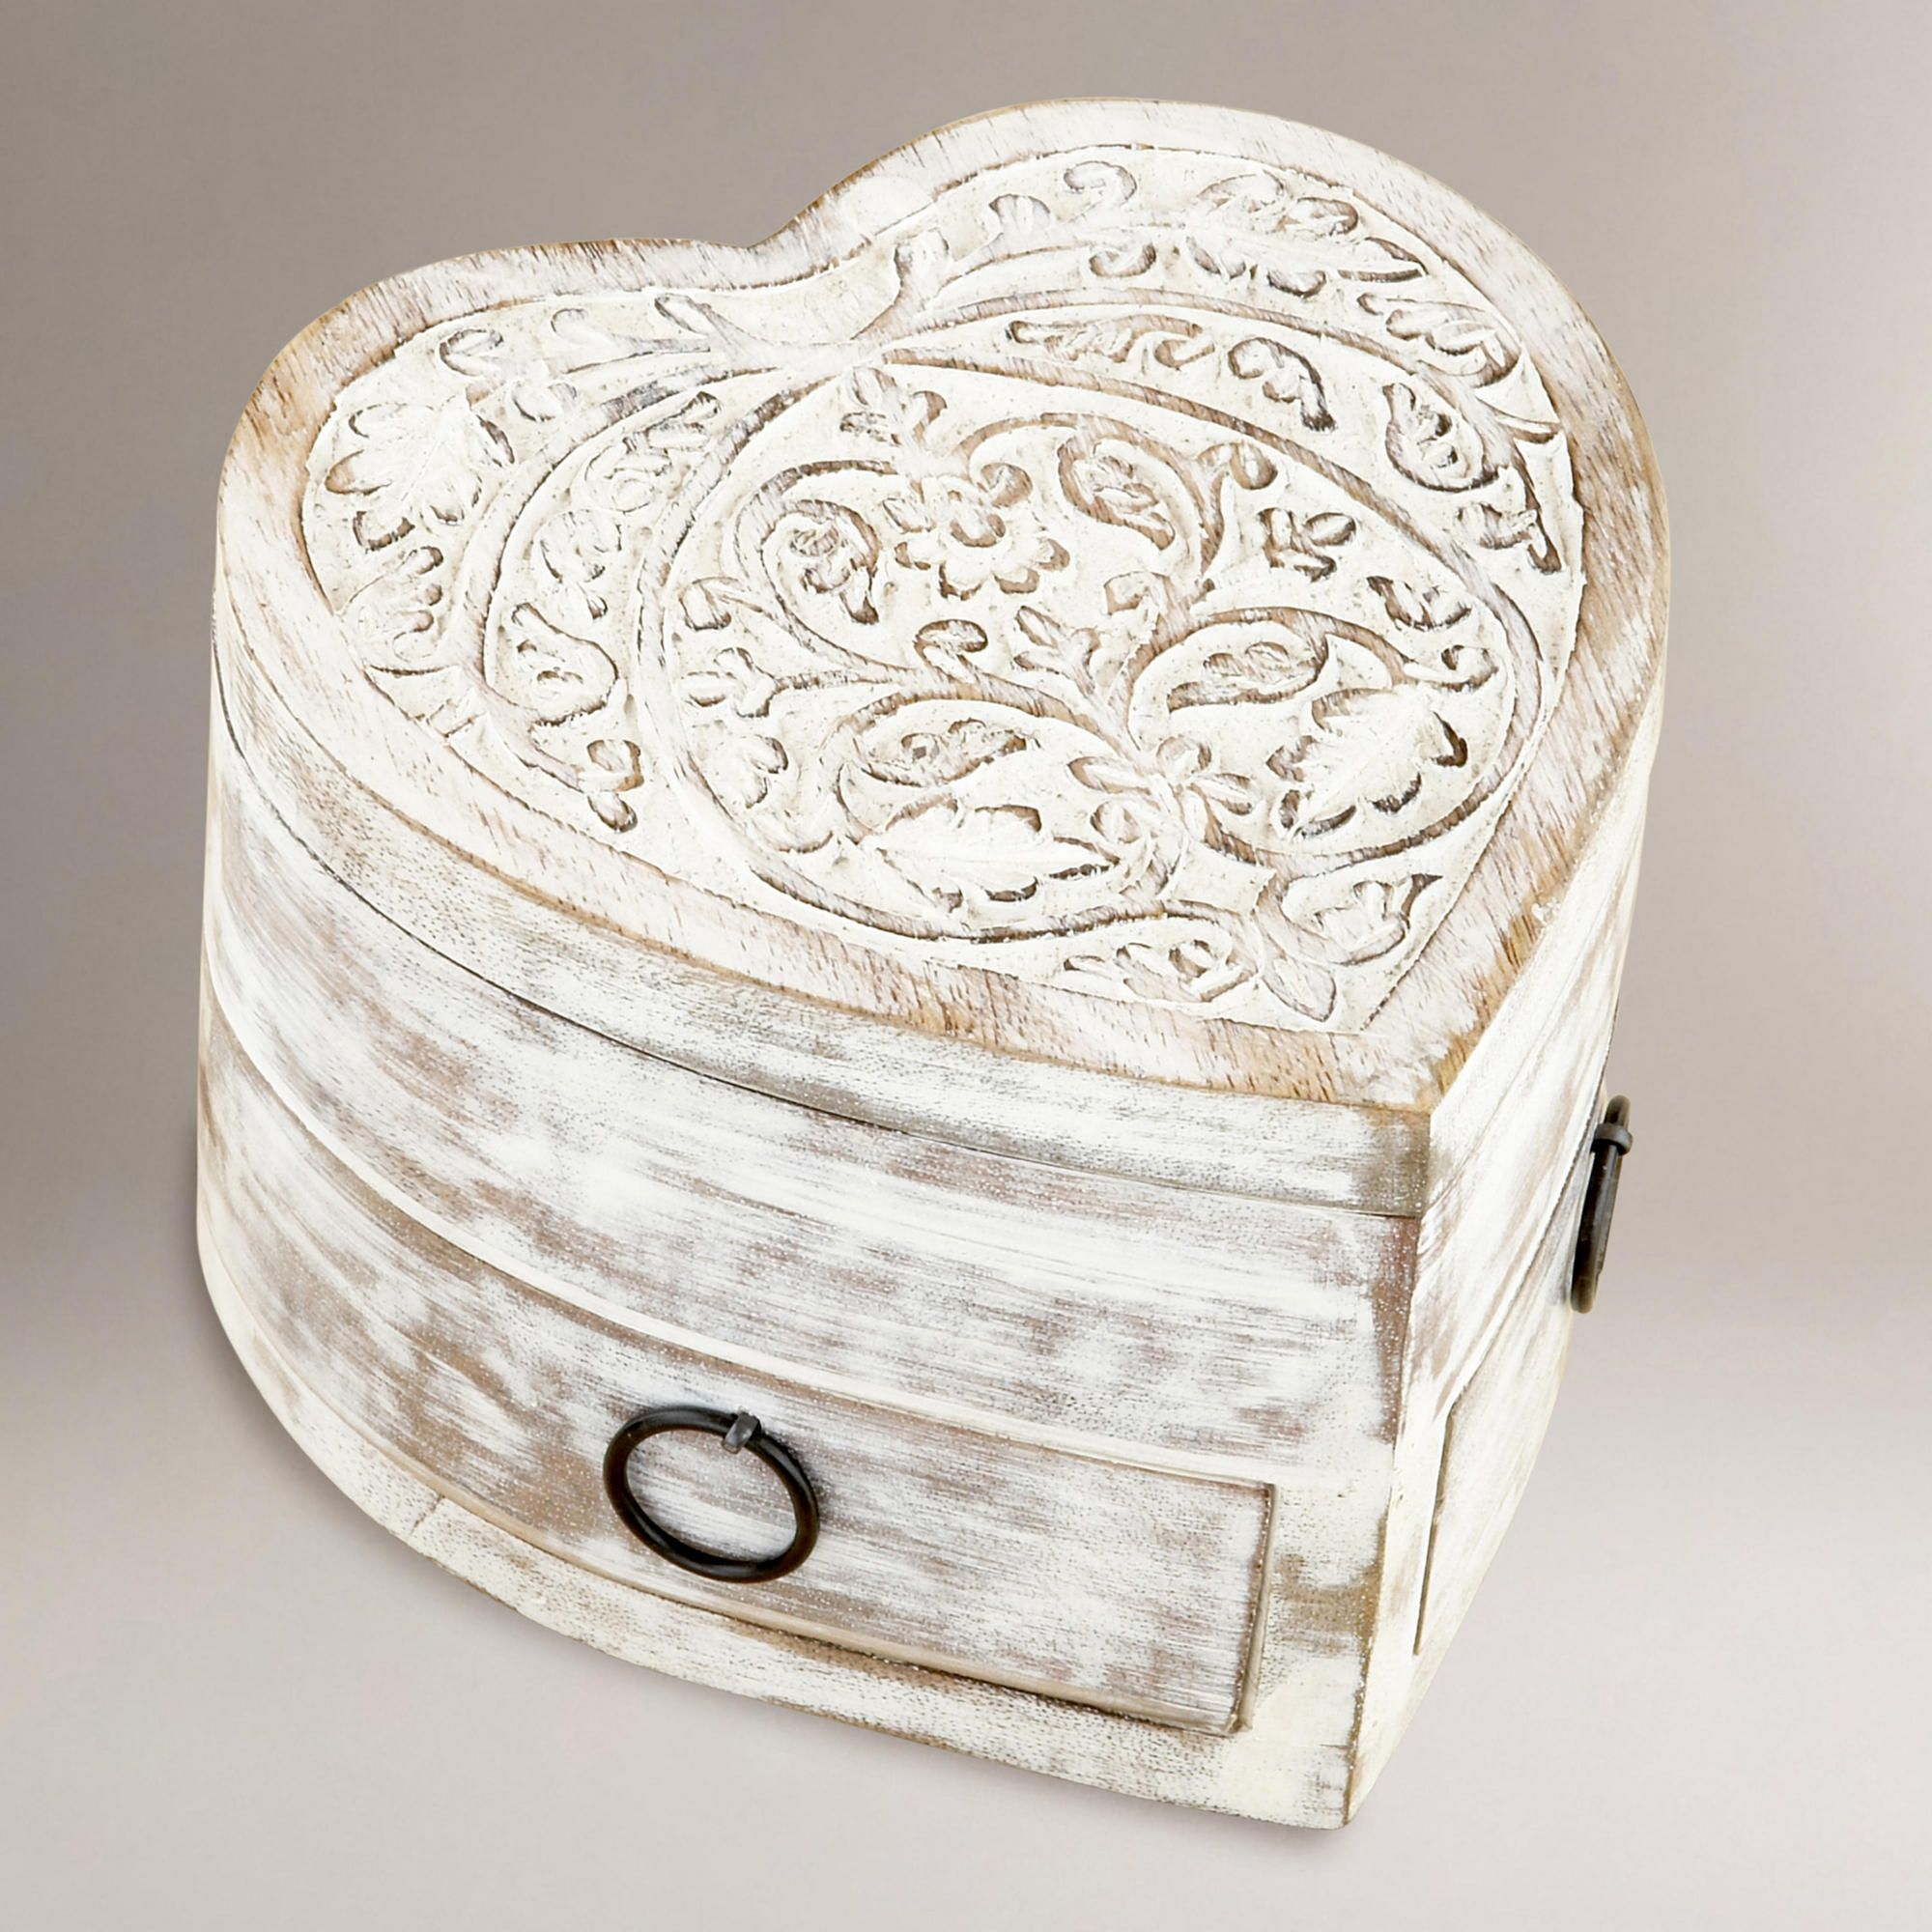 World Market Jewelry Box Inspiration White Helena Heart Jewelry Box With Drawers  World Market  Hearts Inspiration Design